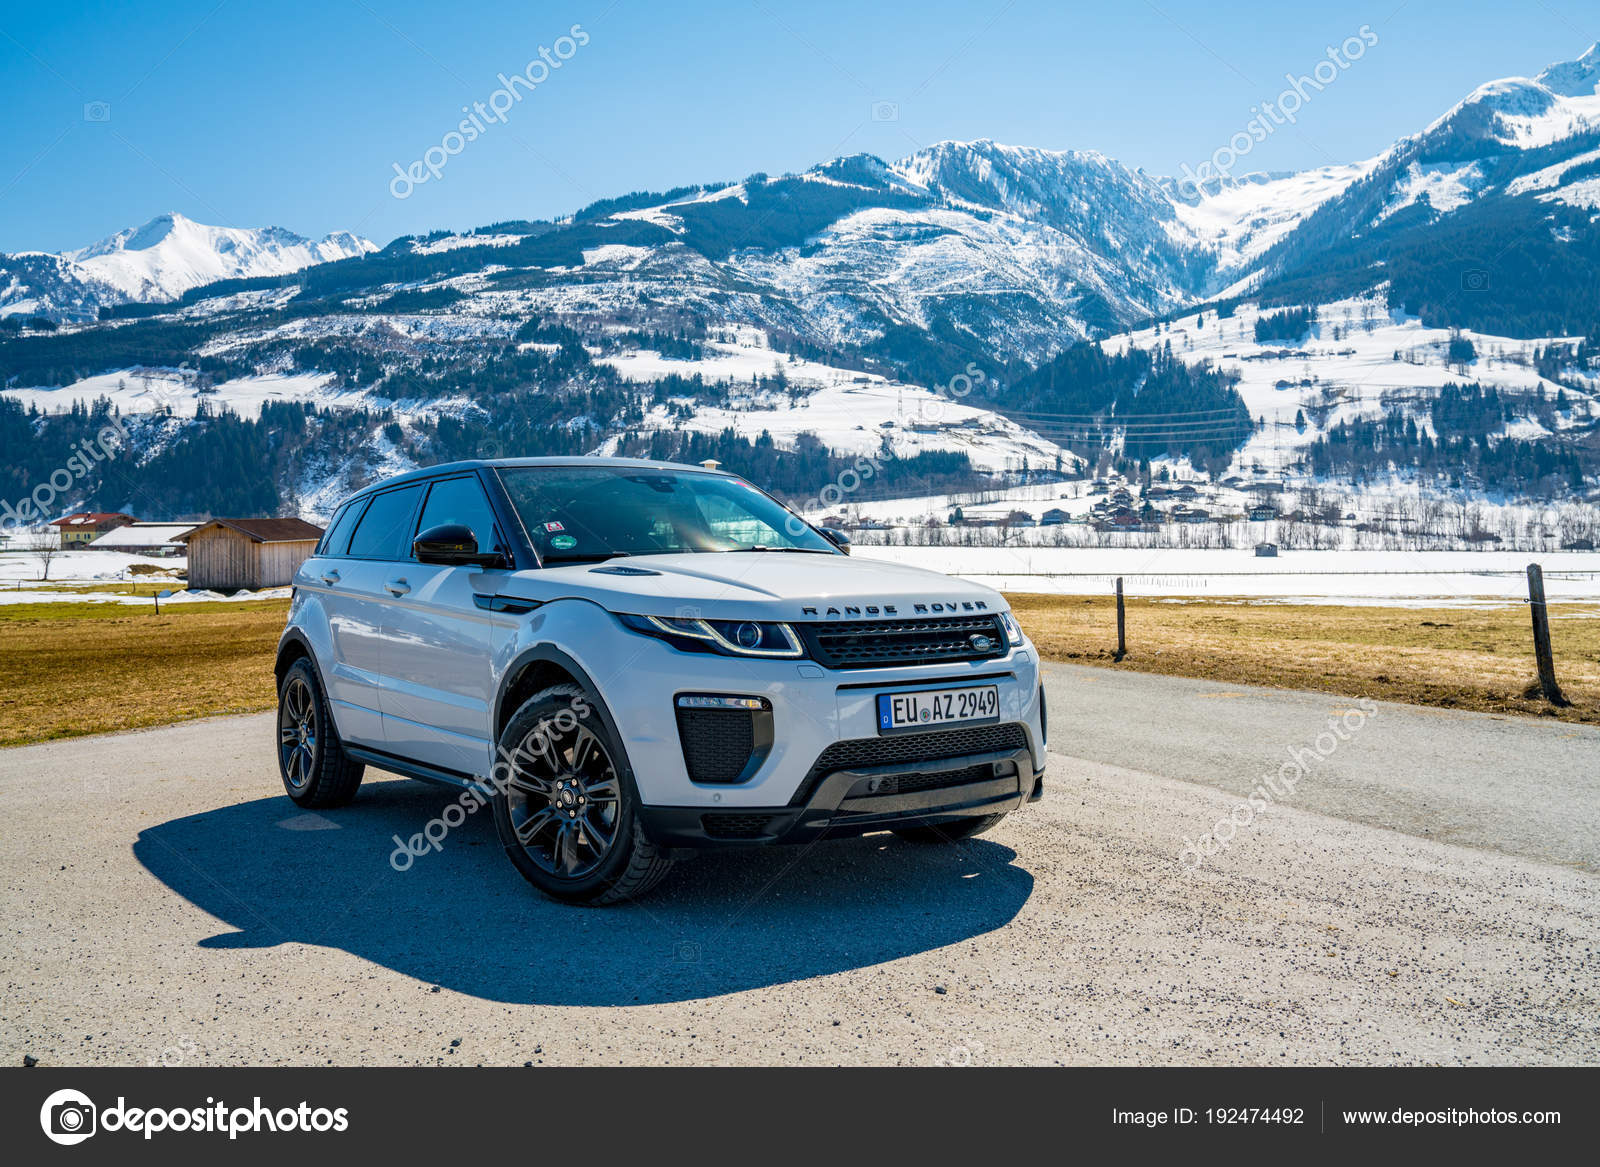 White Range Rover Evoque Austria Alps March 2018 Latest Brand Stock Photo